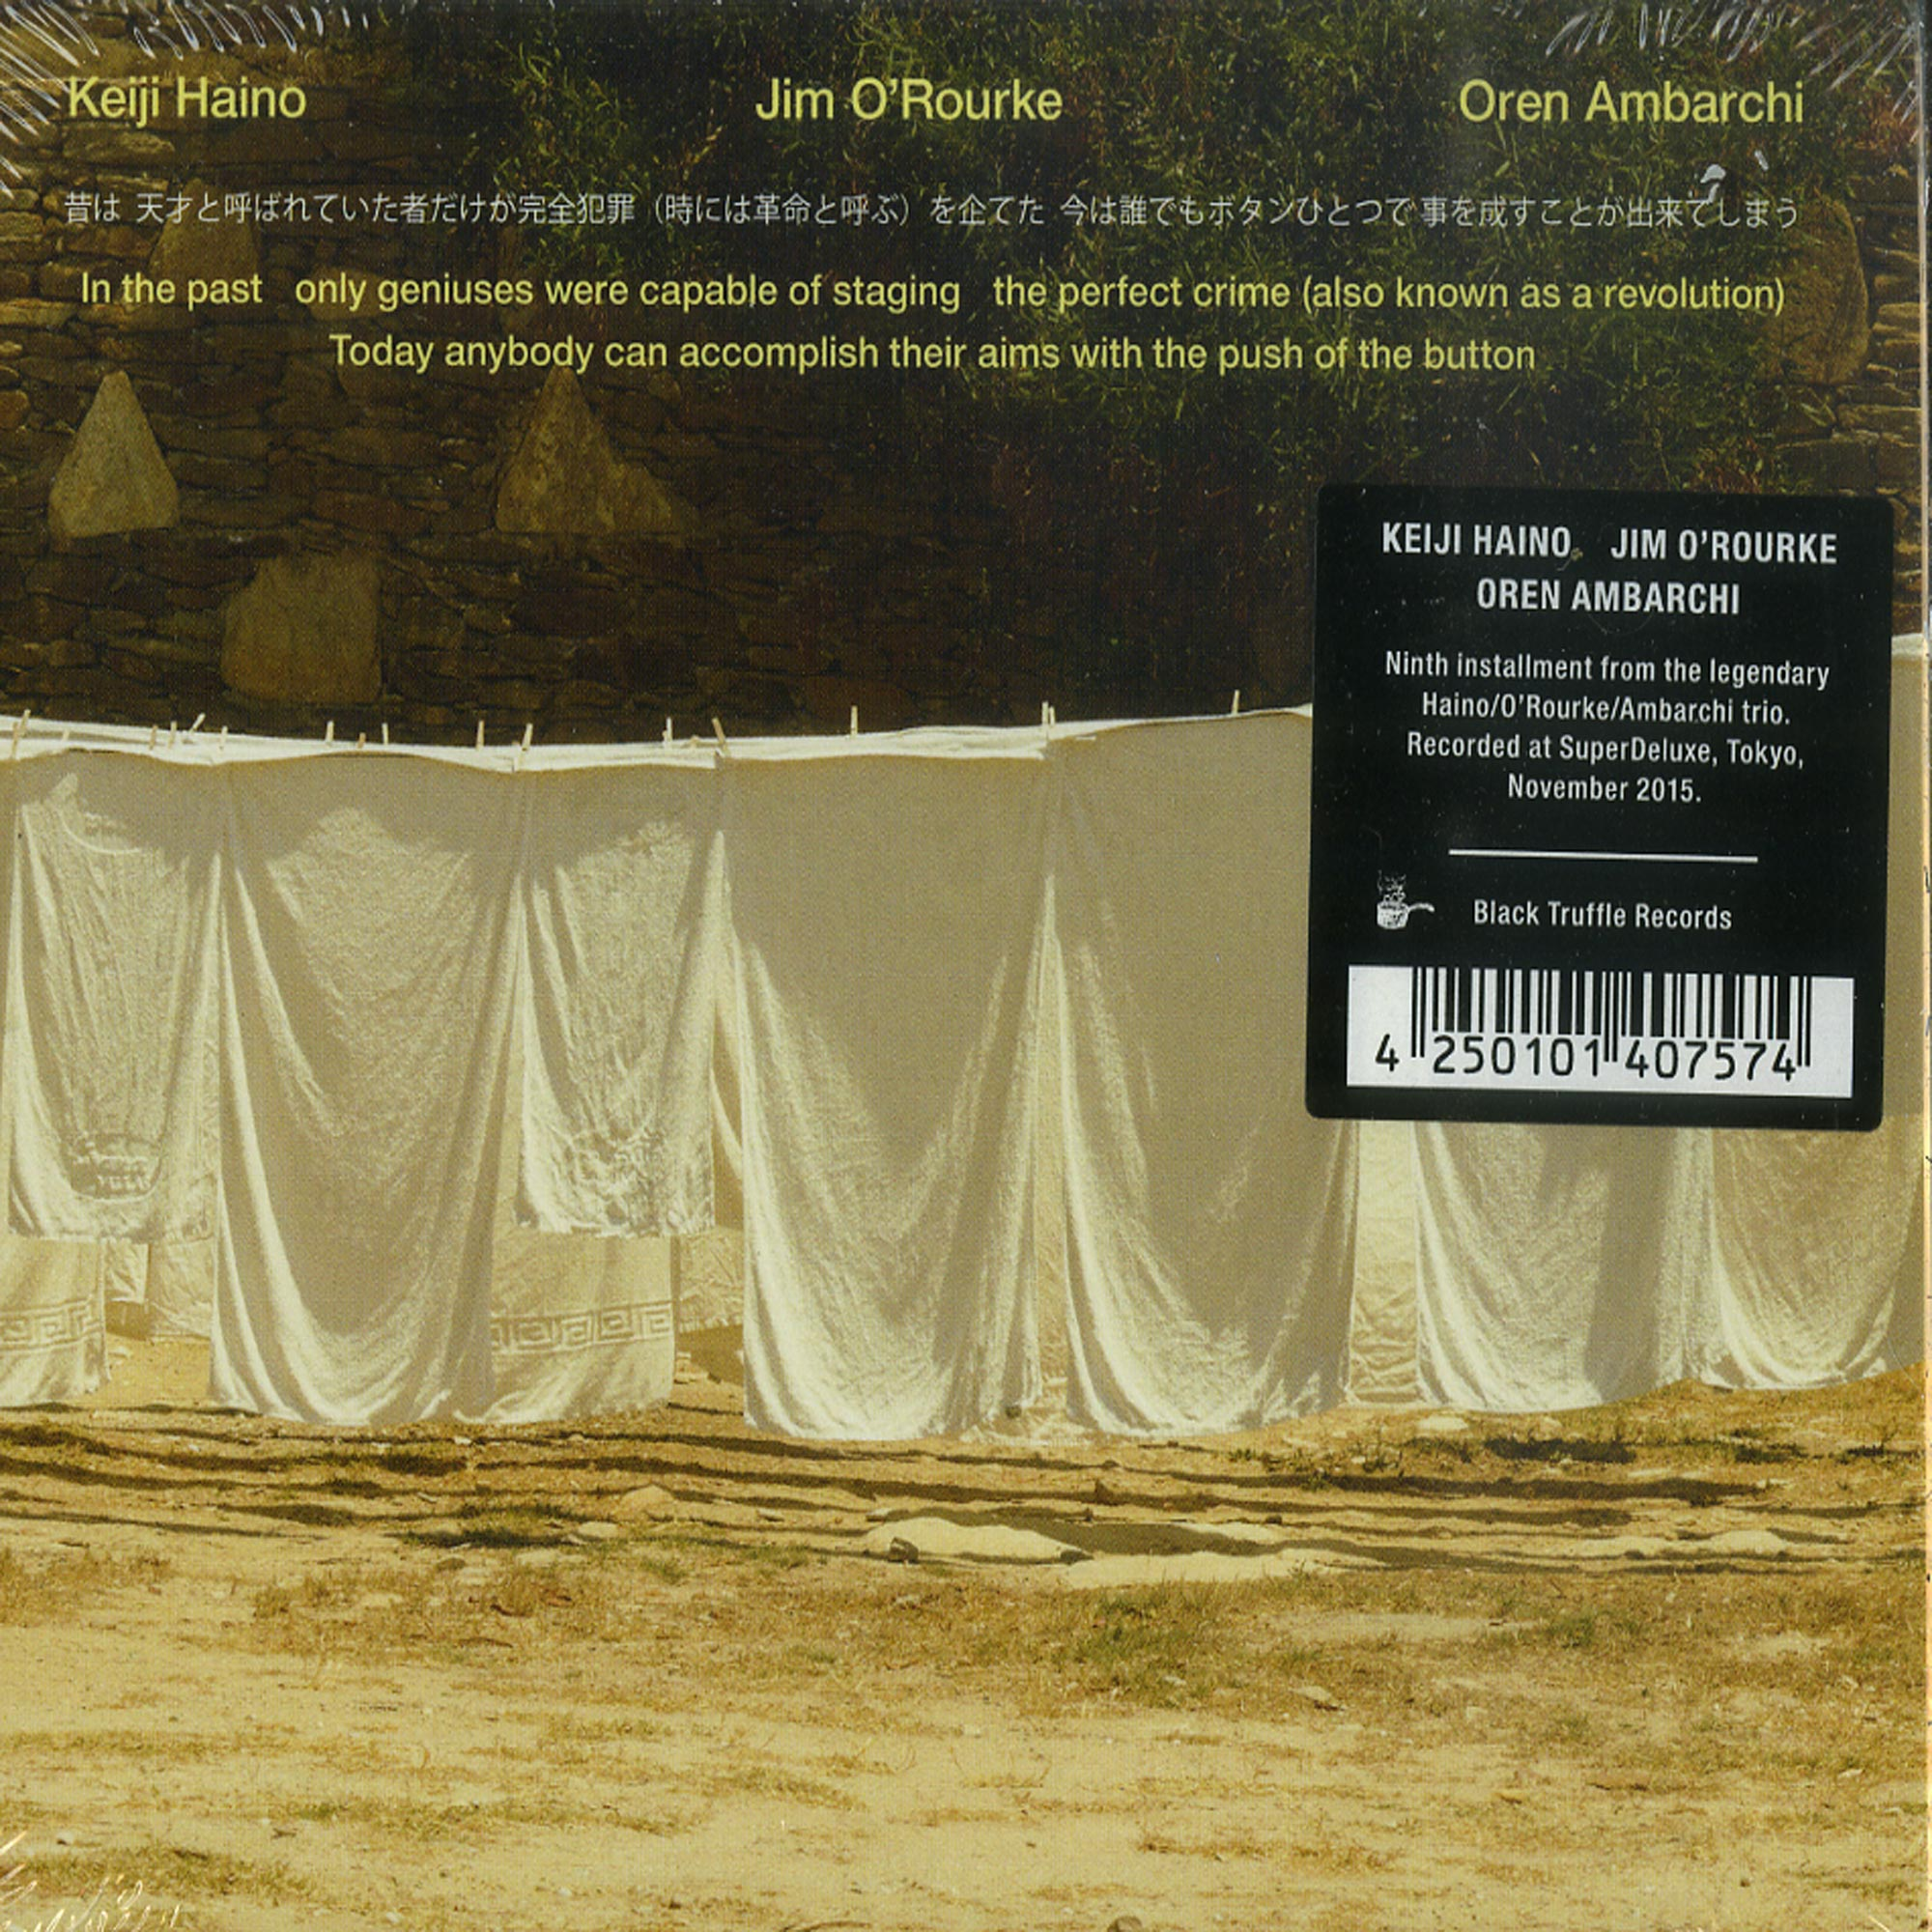 Keiji Haino / Jim ORourke / Oren Ambarchi - IN THE PAST ONLY GENIUSES WERE CAPABLE OF STAGING THE PERFECT CRIME